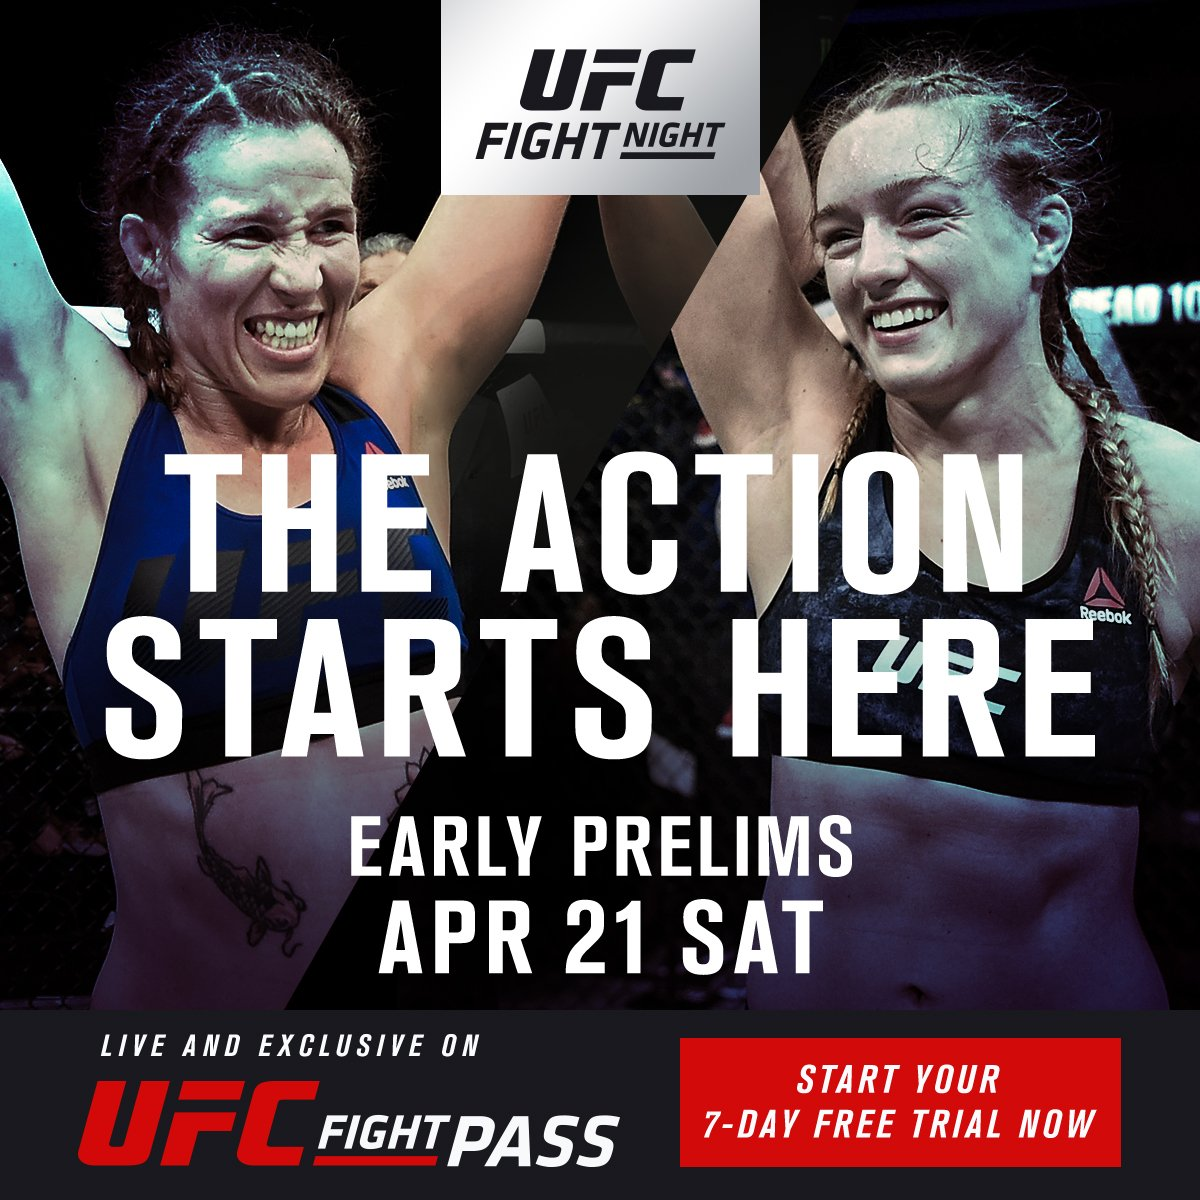 We got a crazy good Featured Bout lined up next Saturday at #UFCAtlanticCity!  The unbeaten rising star @AspenLaddMMA takes on @LeslieSmith_GF!